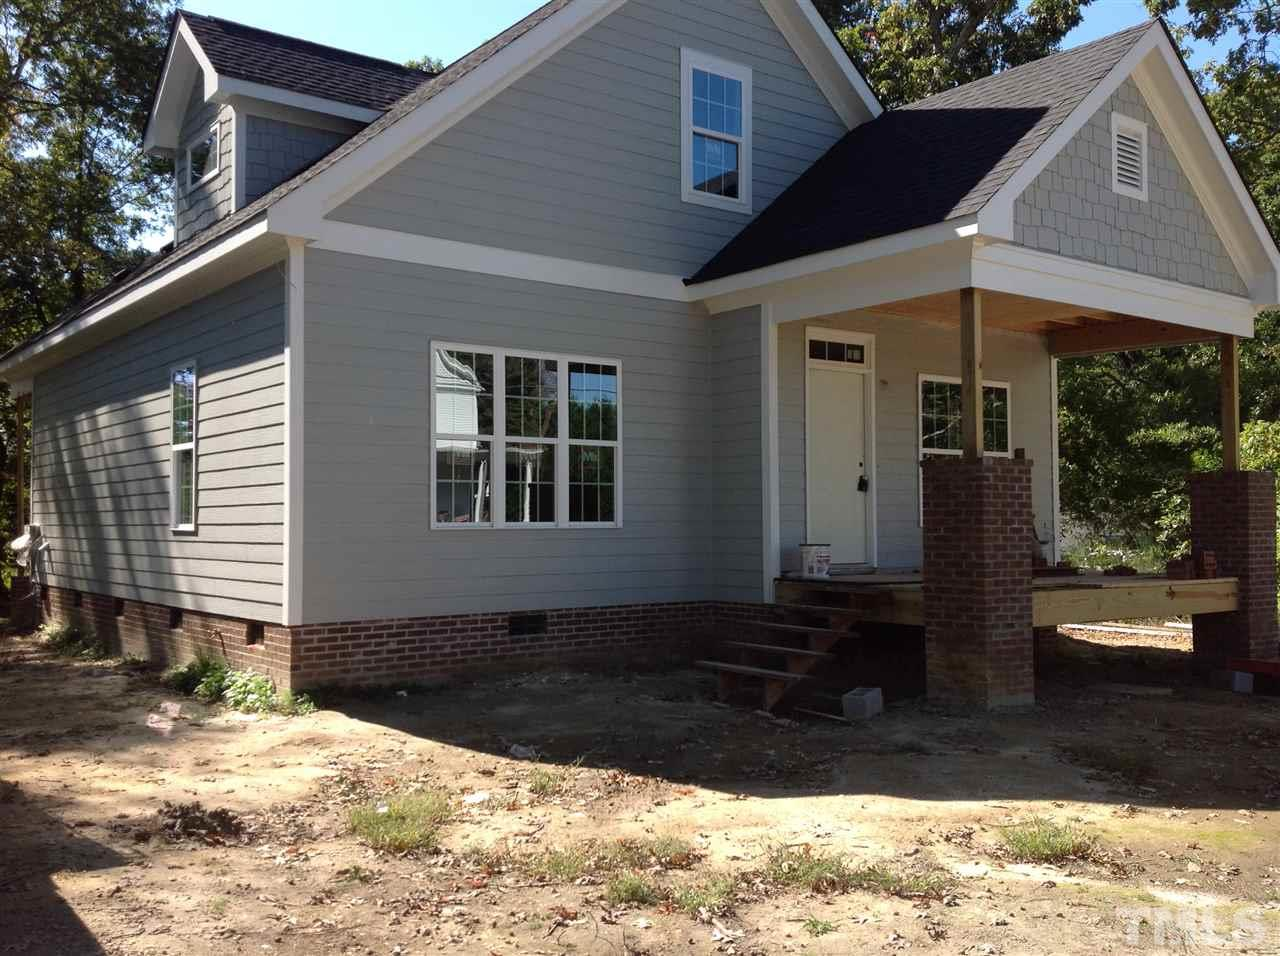 111 W Franklin St, Youngsville, NC